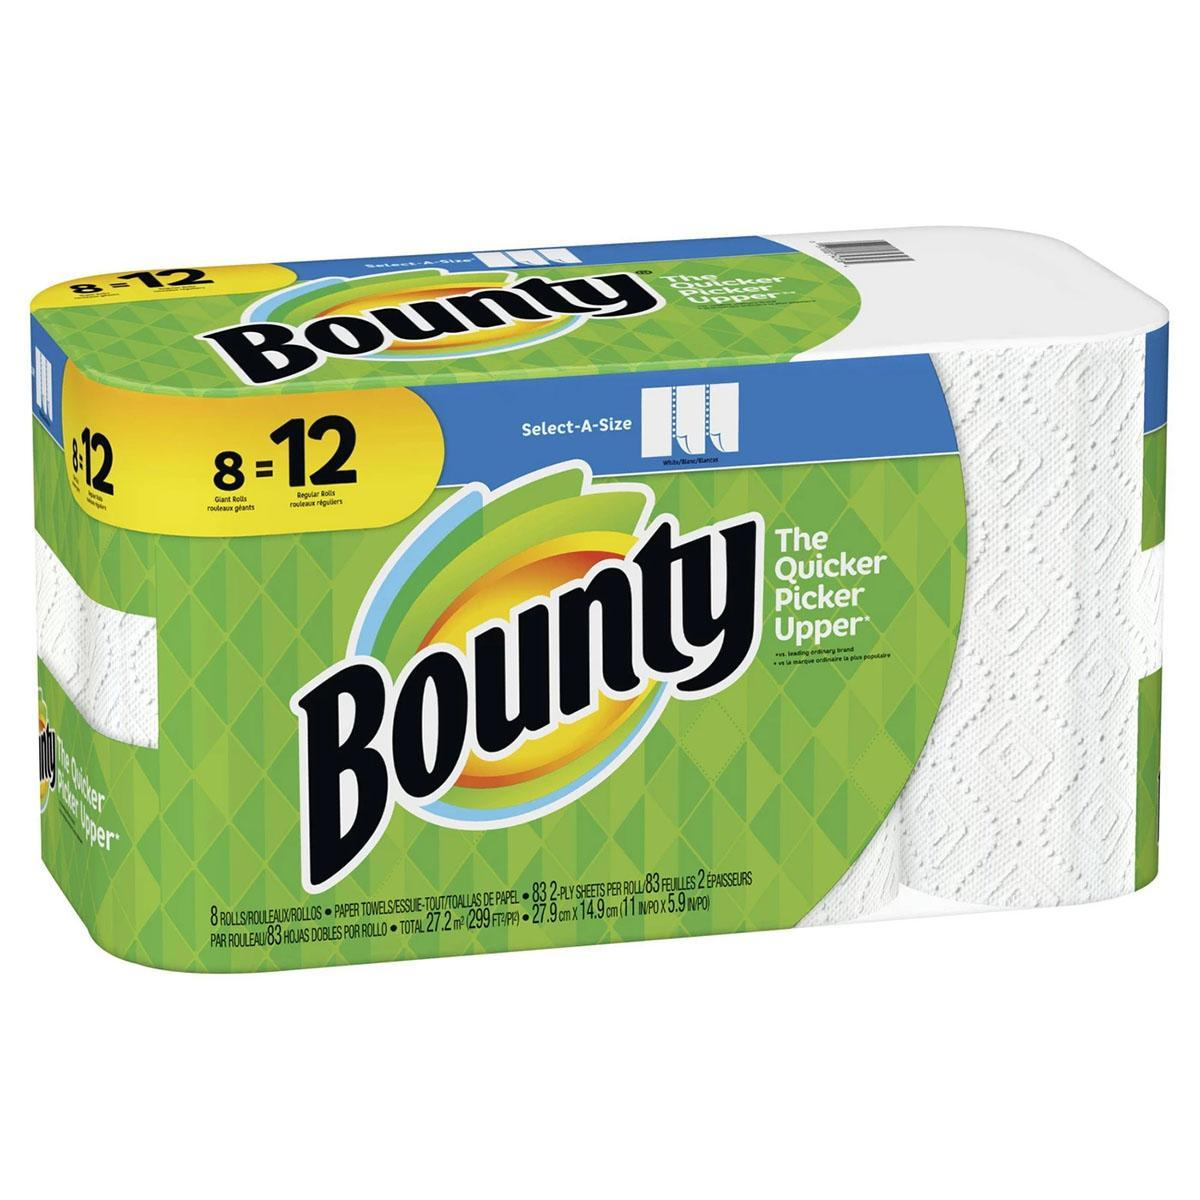 24x Bounty Select-A-Size Roll Paper Towels with Gift Card